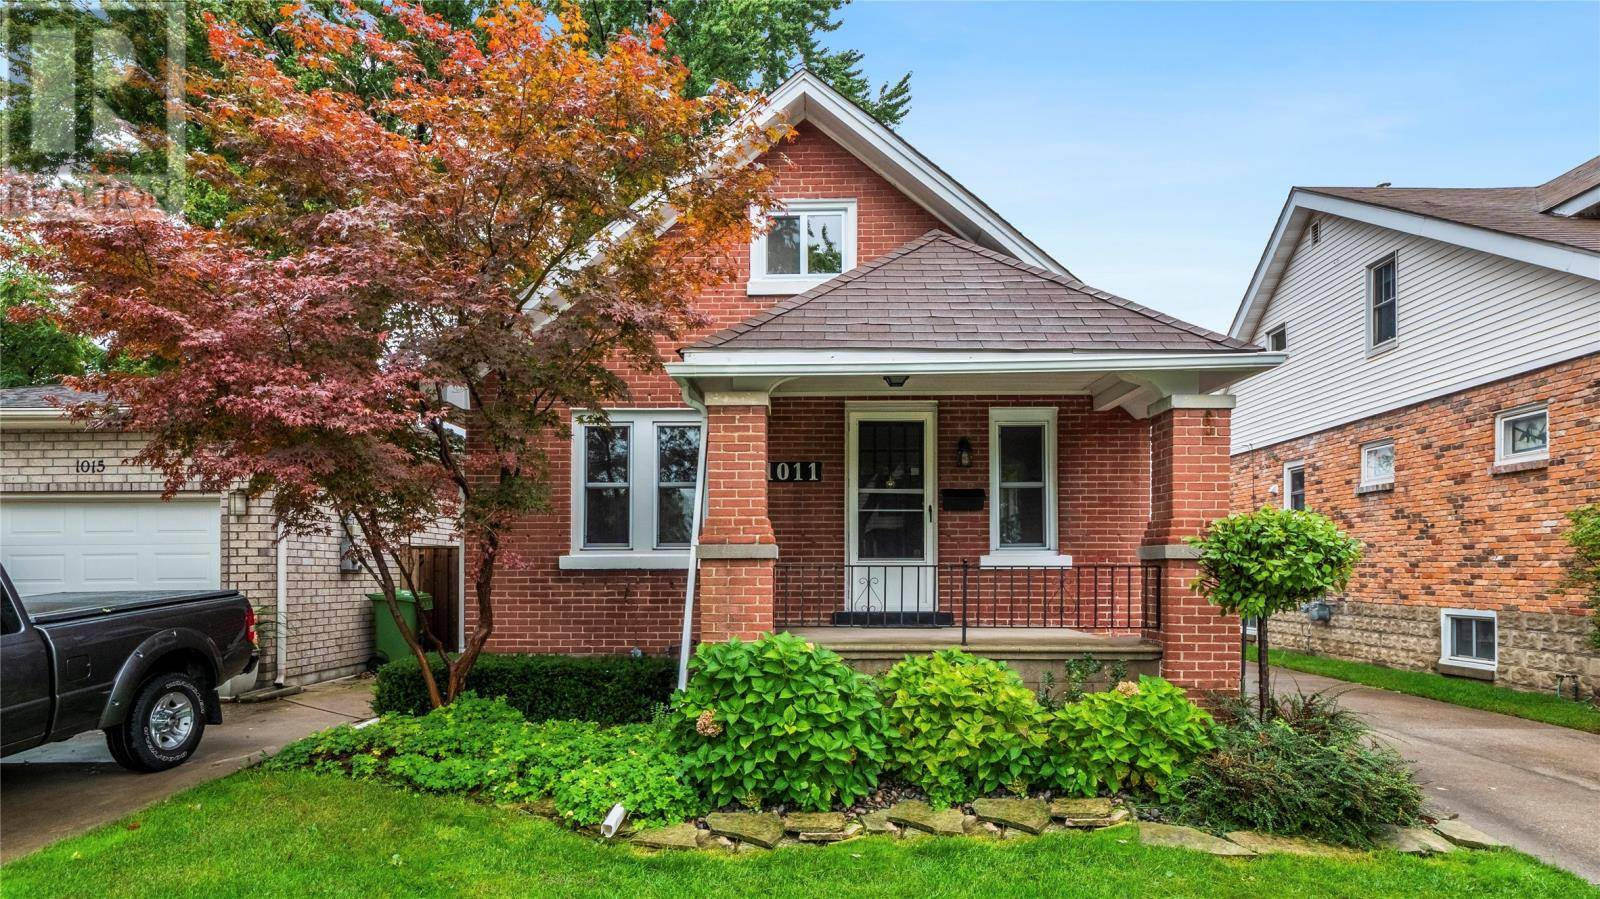 House for sale at 1011 Glidden Ave Windsor Ontario - MLS: 19026401